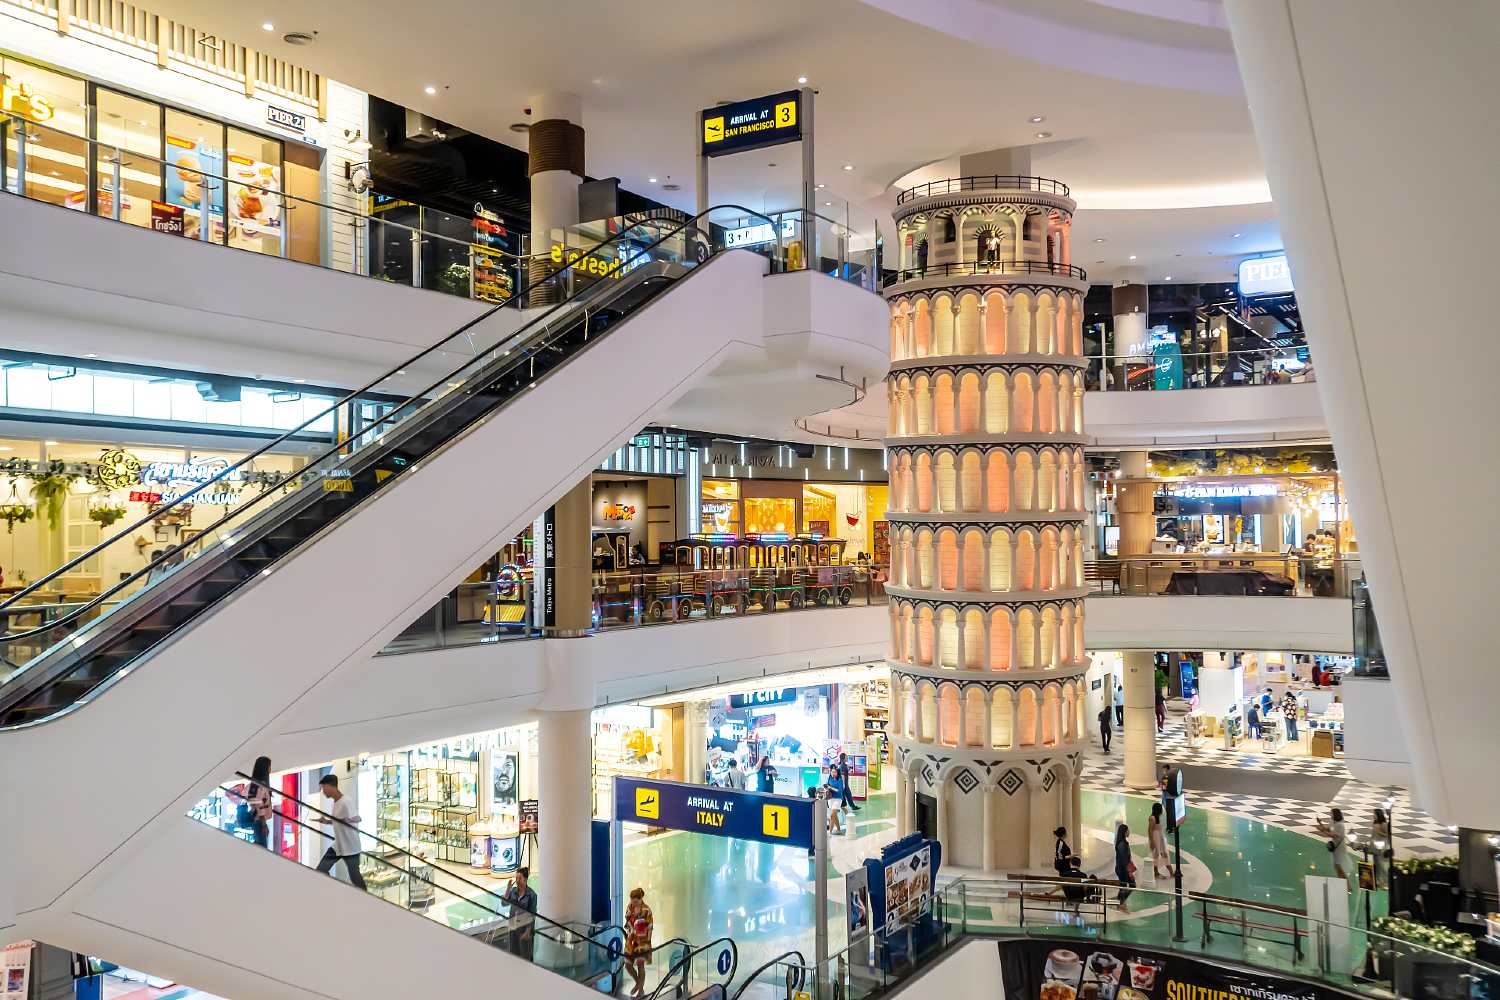 Tower of Pisa out in Italy at Terminal 21 Pattaya